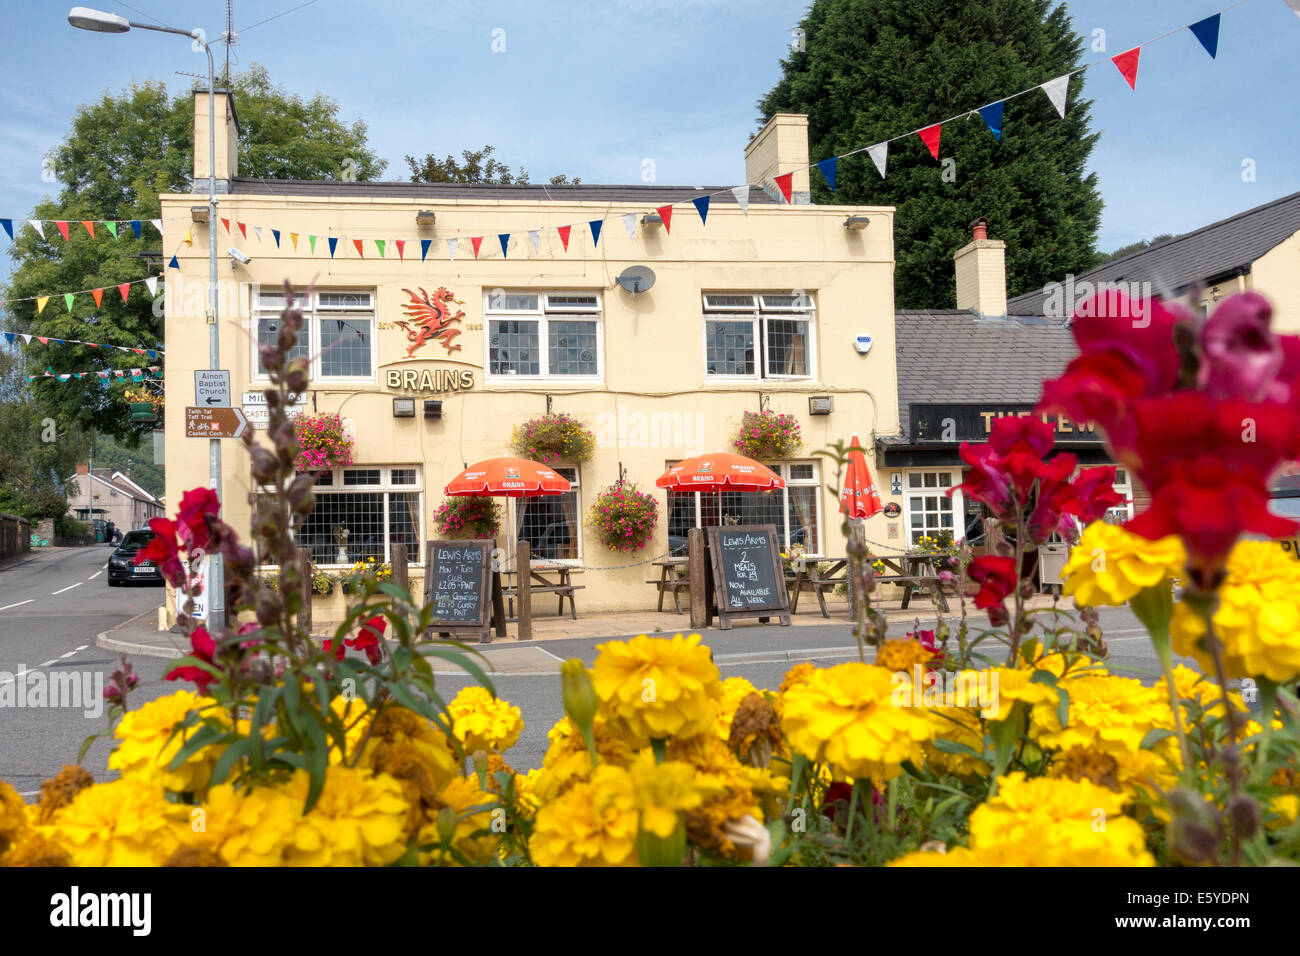 Brains Beer Pub Lewis Arms Tongwynlais - Stock Image